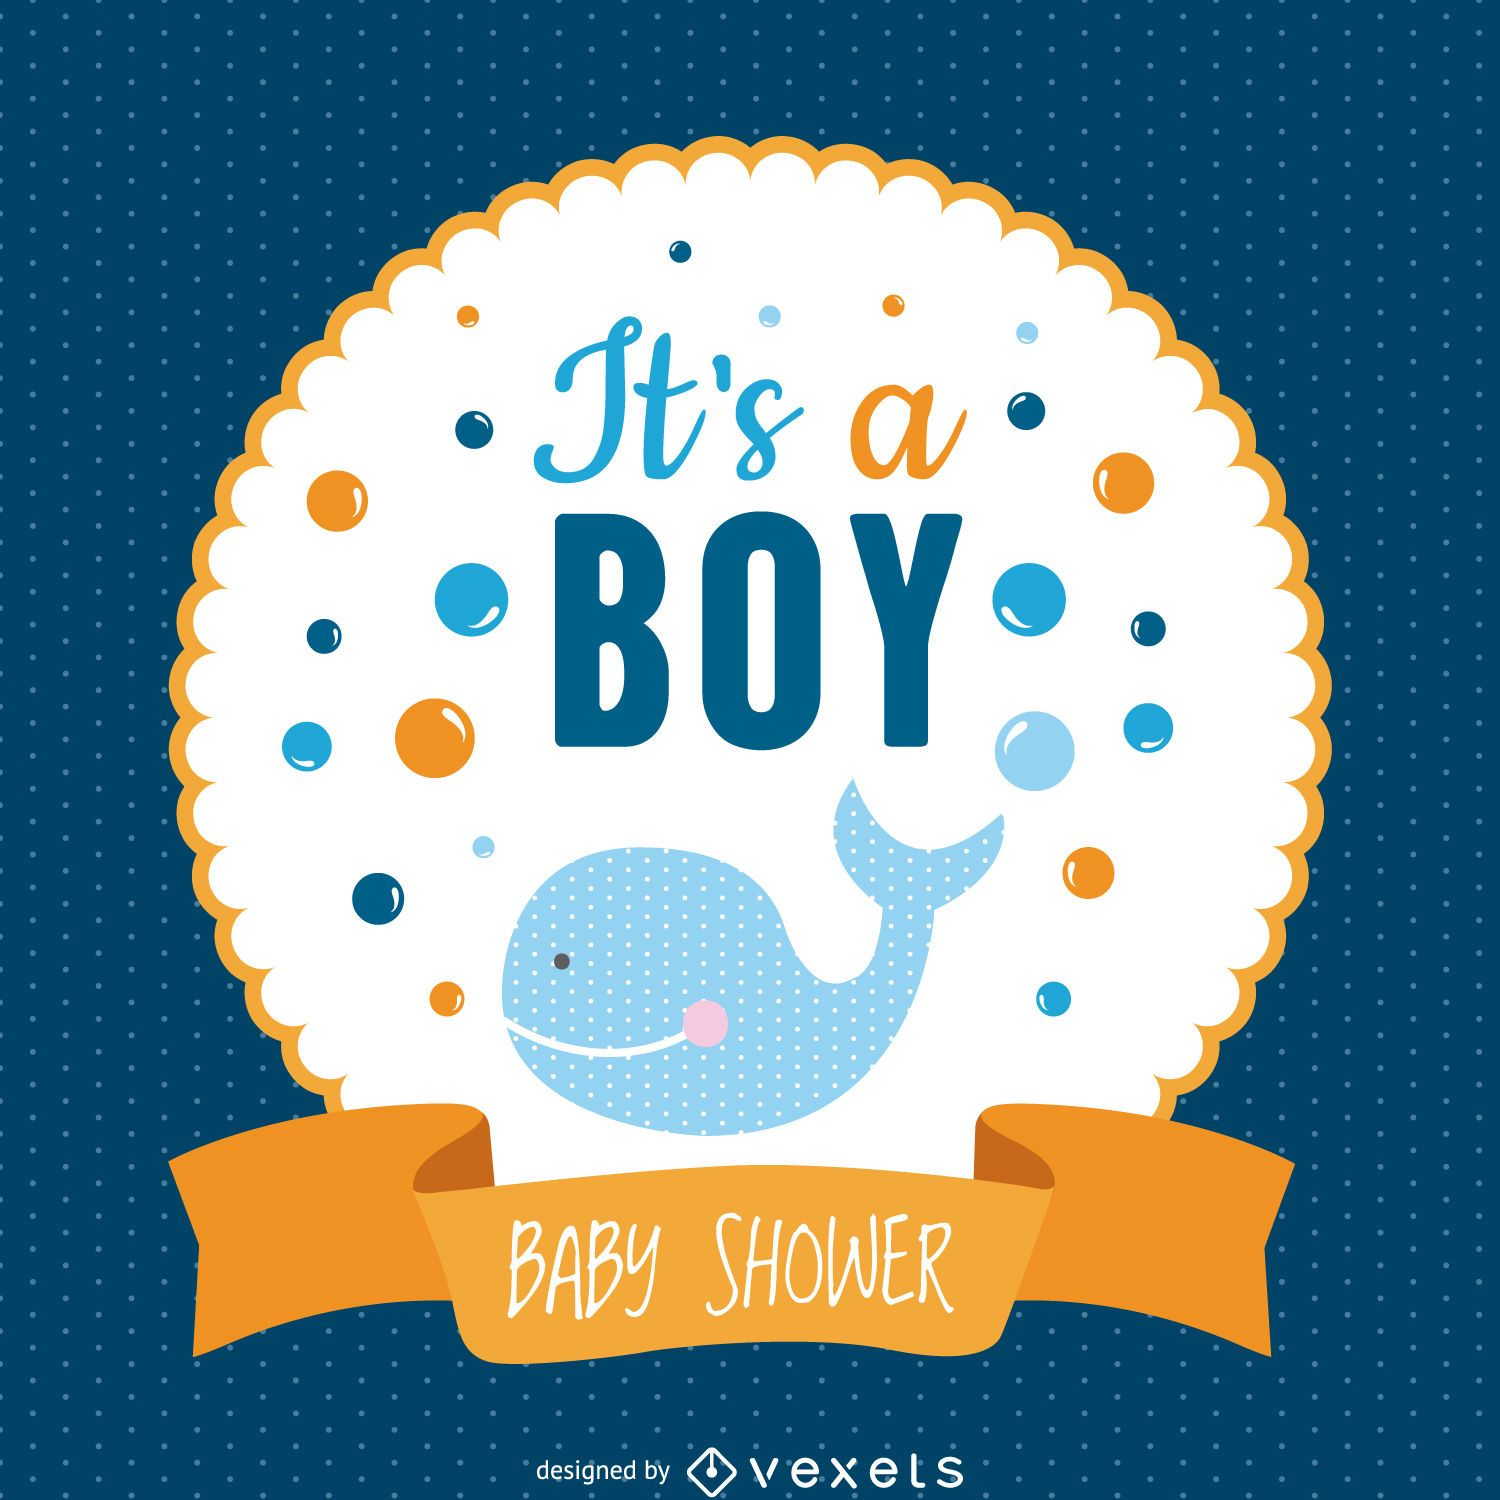 Boy baby shower design - Vector download